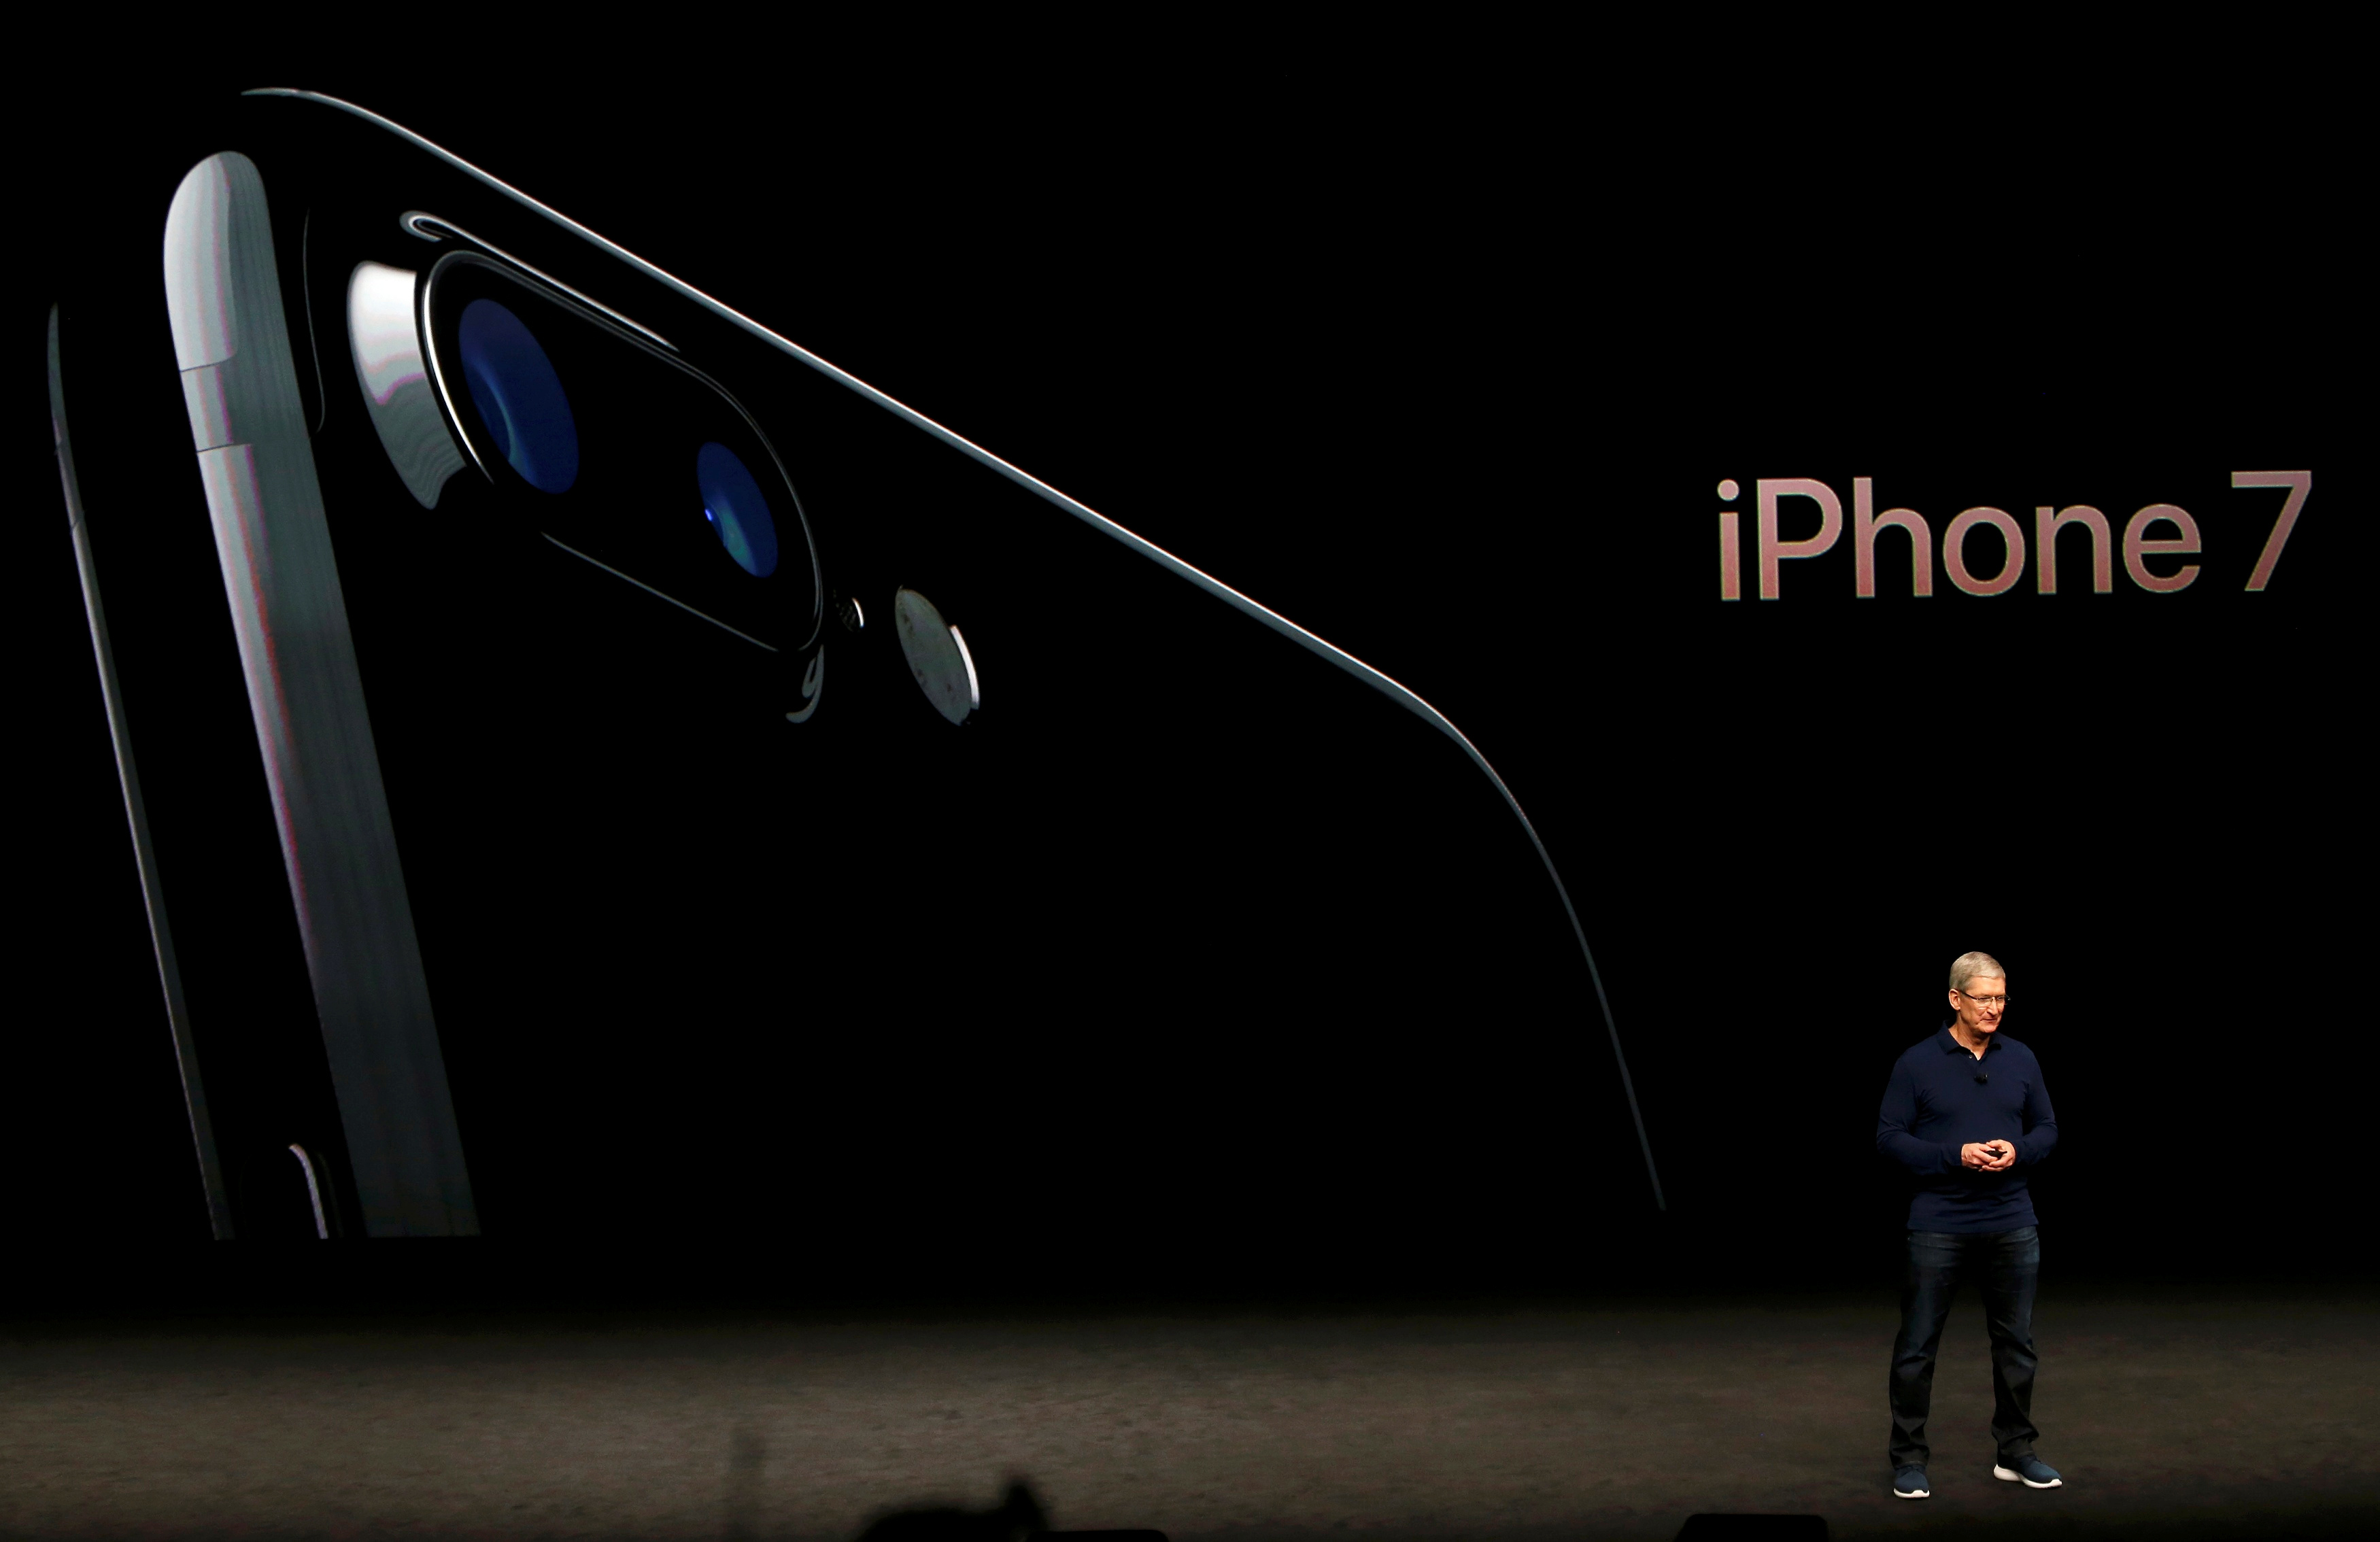 iPhone 7 AirPods Cost: Price Of Wireless Headphones And